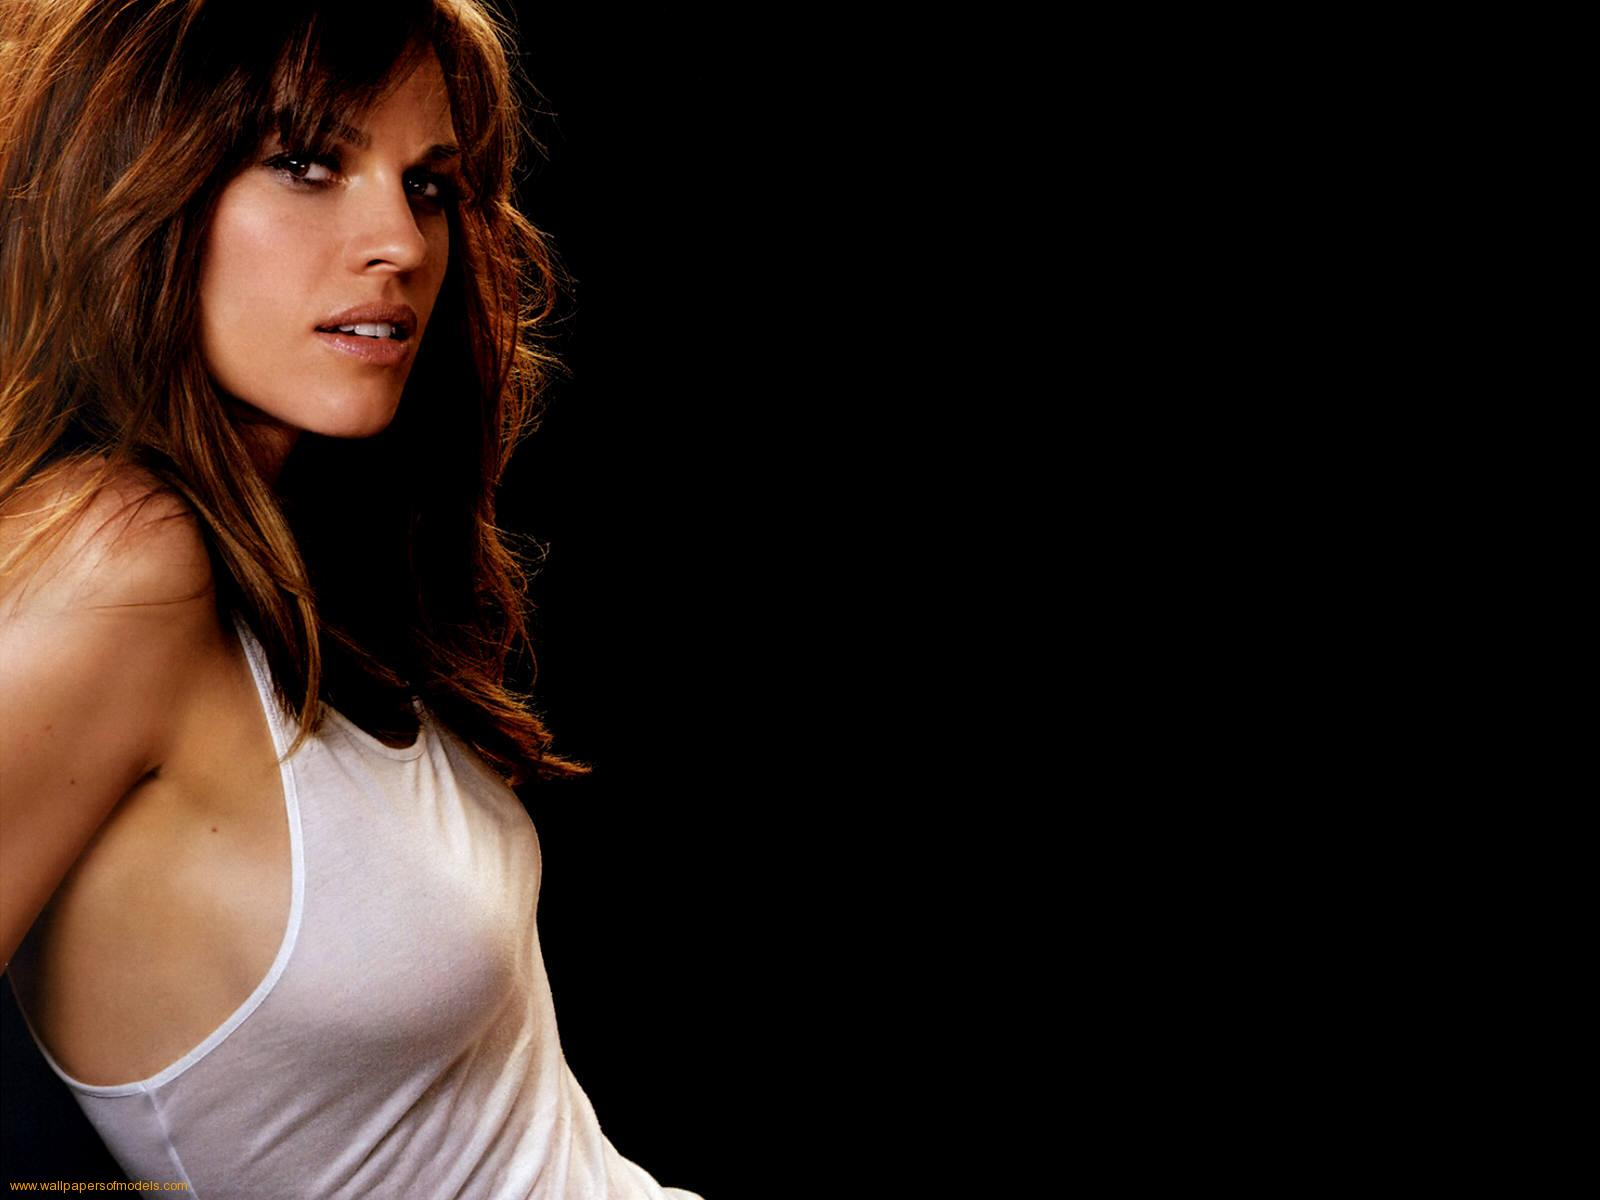 Hilary swank hot join. And